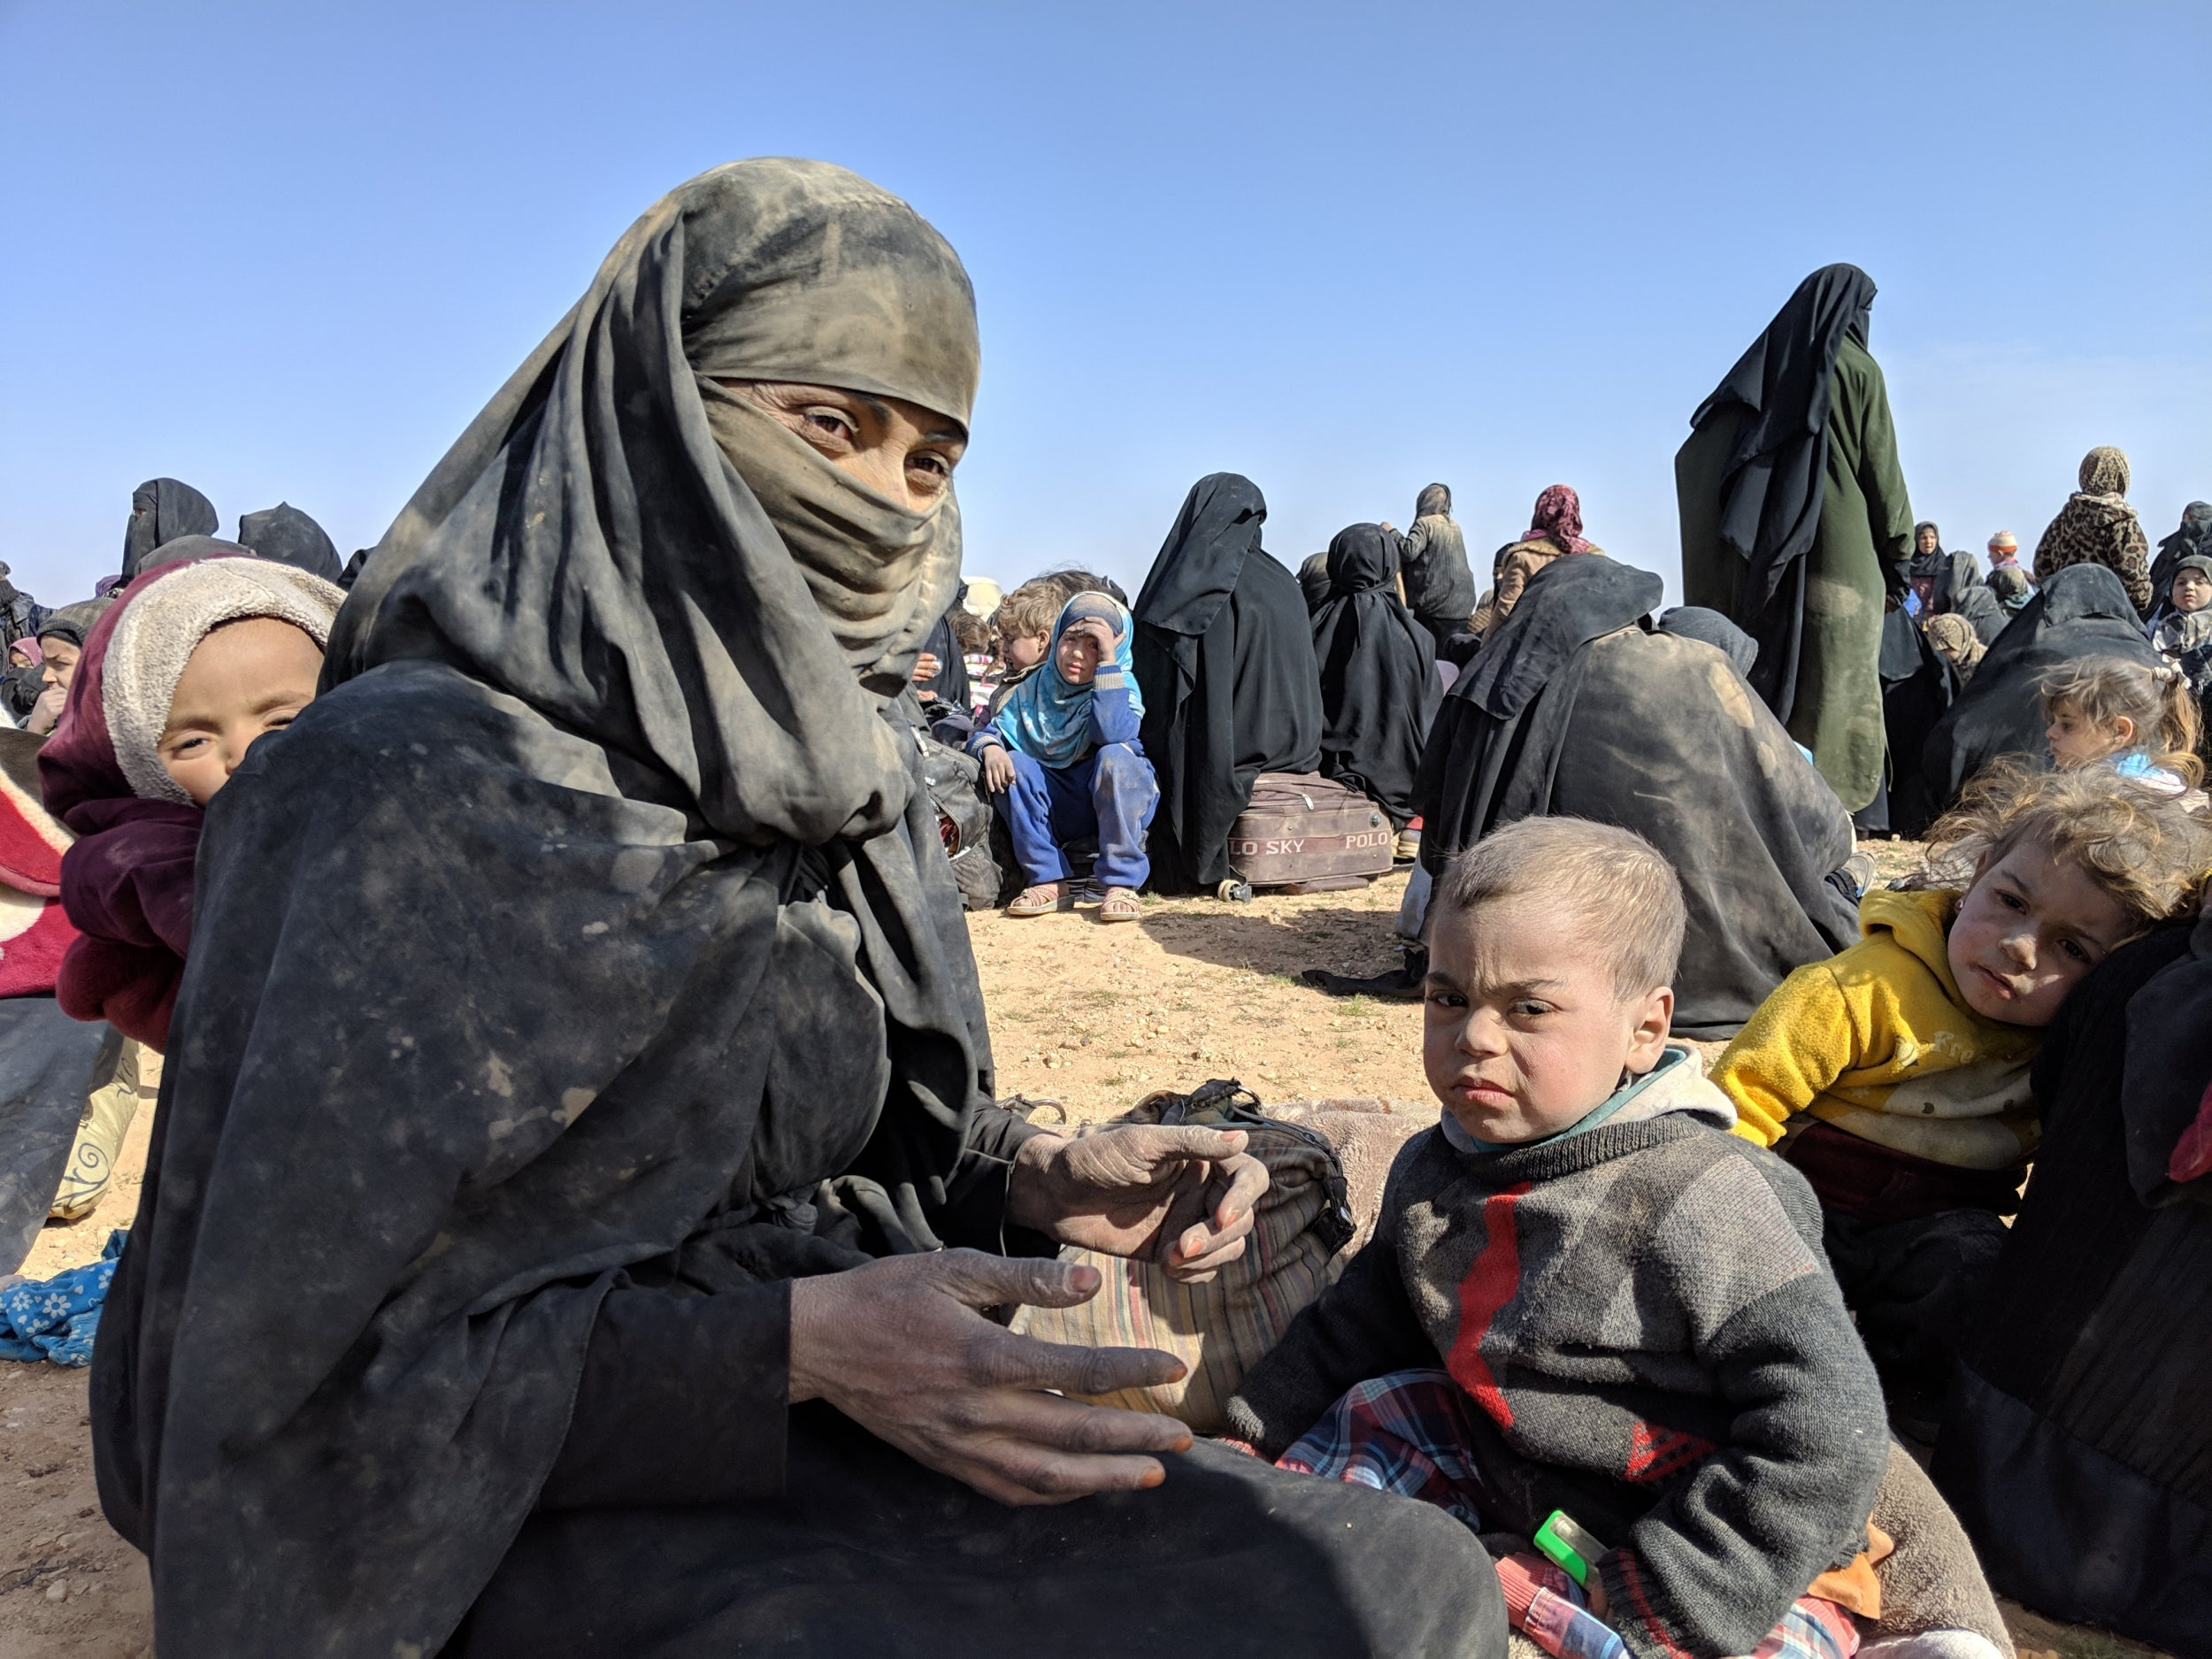 Civilians escaping the SDF battles against ISIS in Baghuz - March 2019 (independent